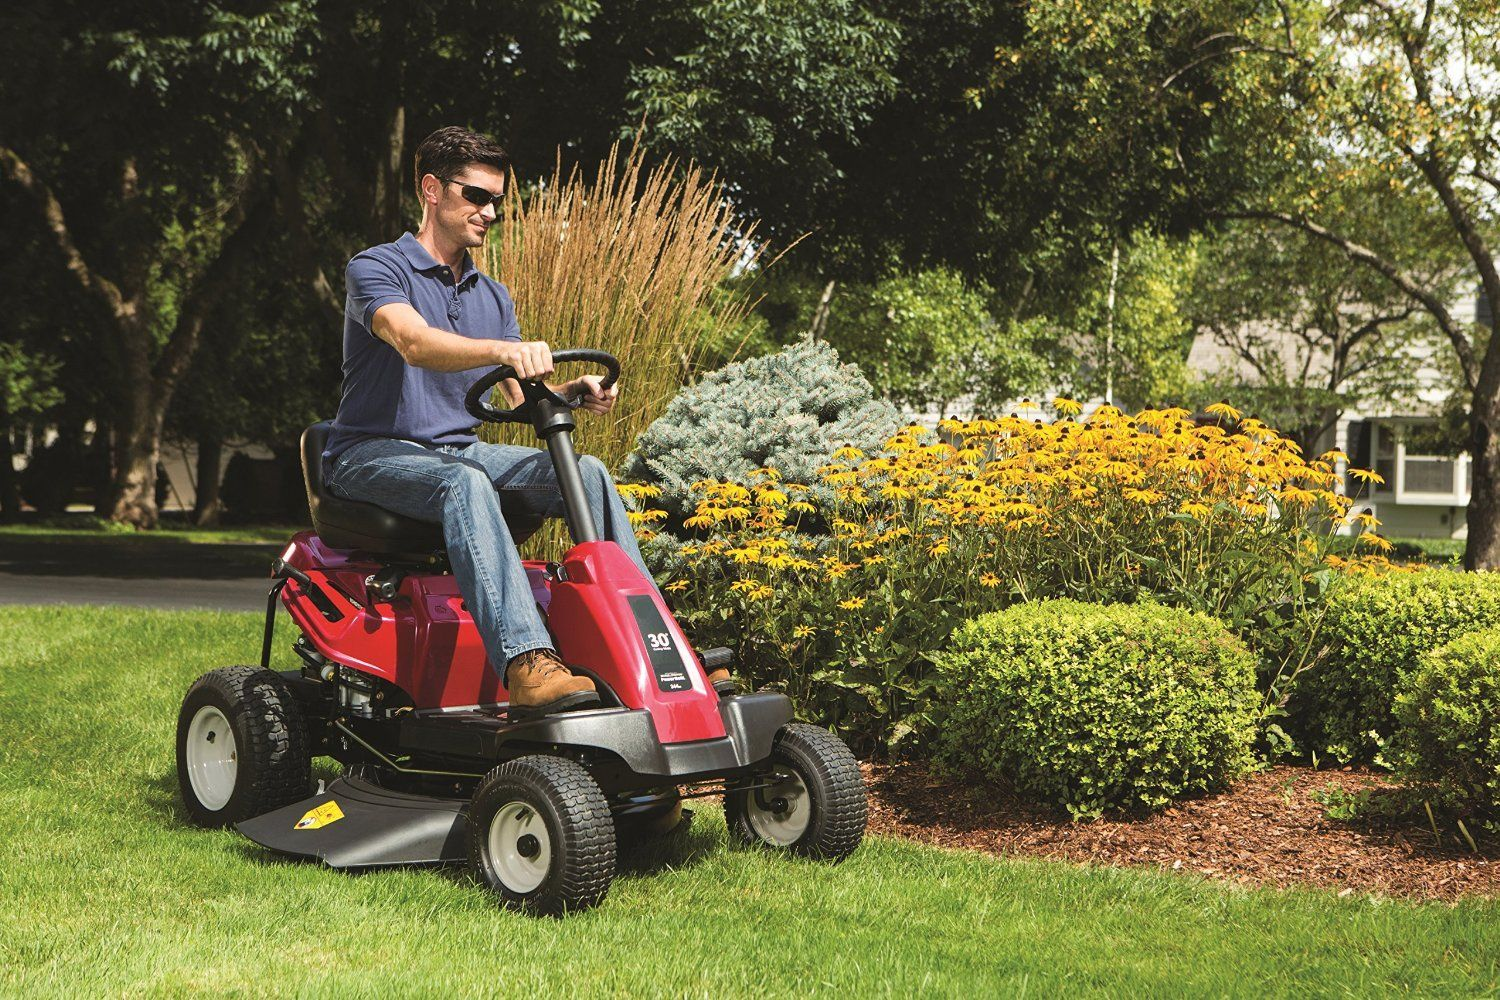 Find the best lawn mower in our lawn mower reviews